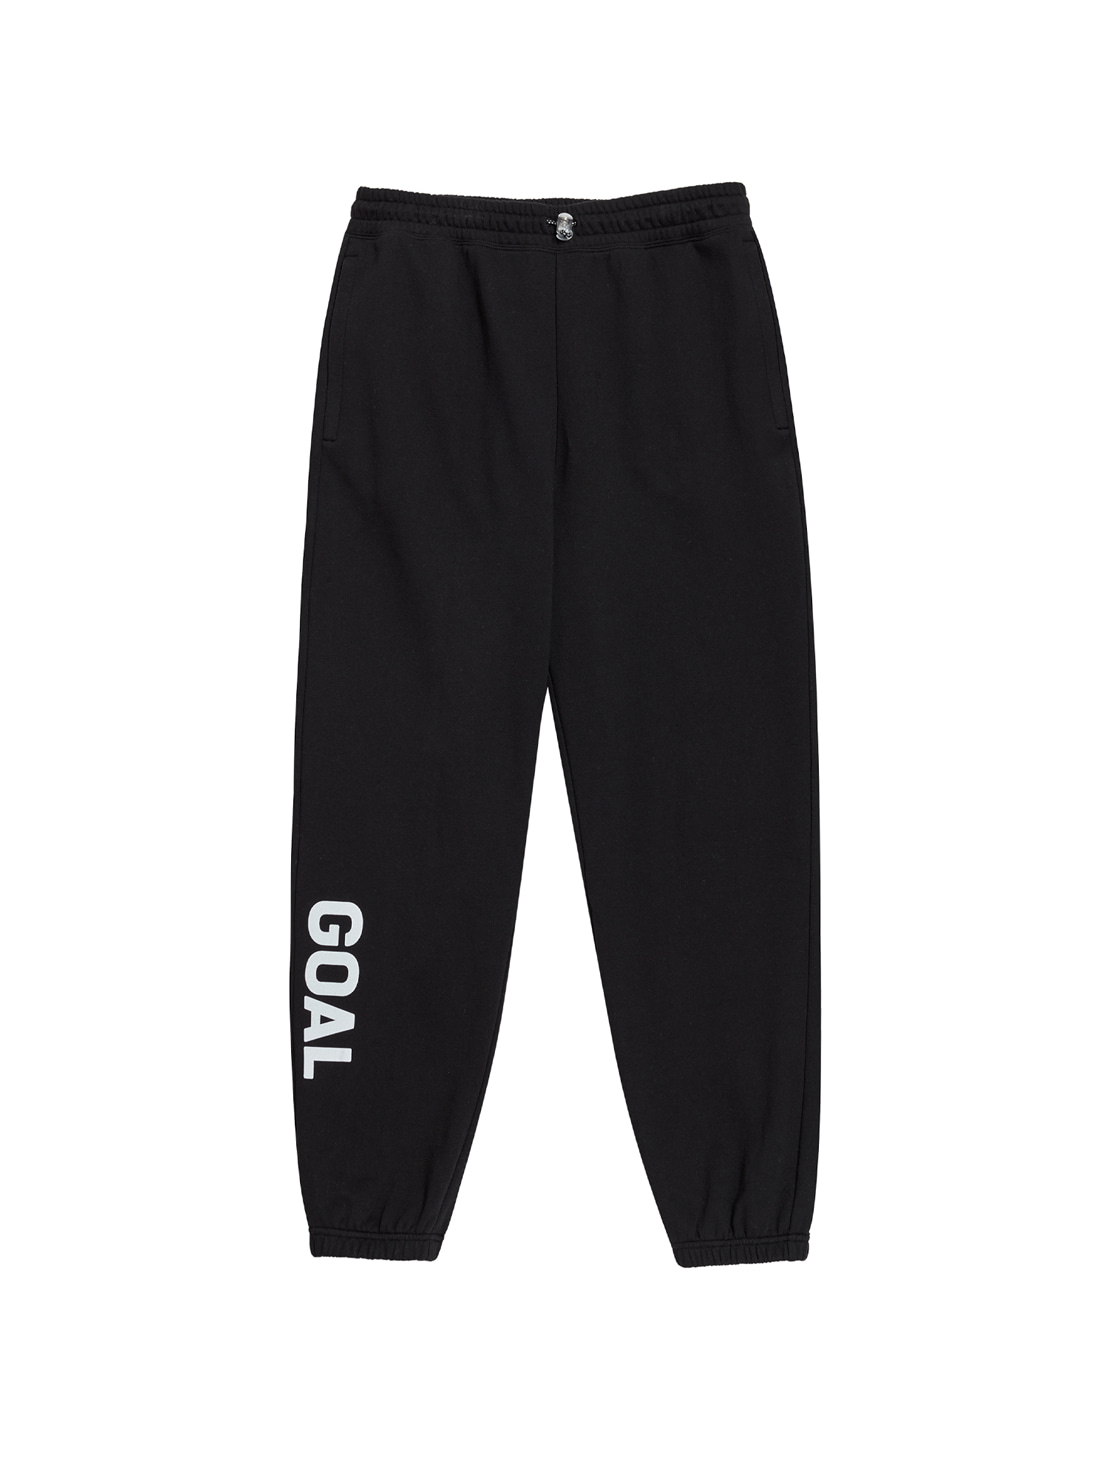 GOALSTUDIO FLOCKING KNIT JOGGER PANTS - BLACK